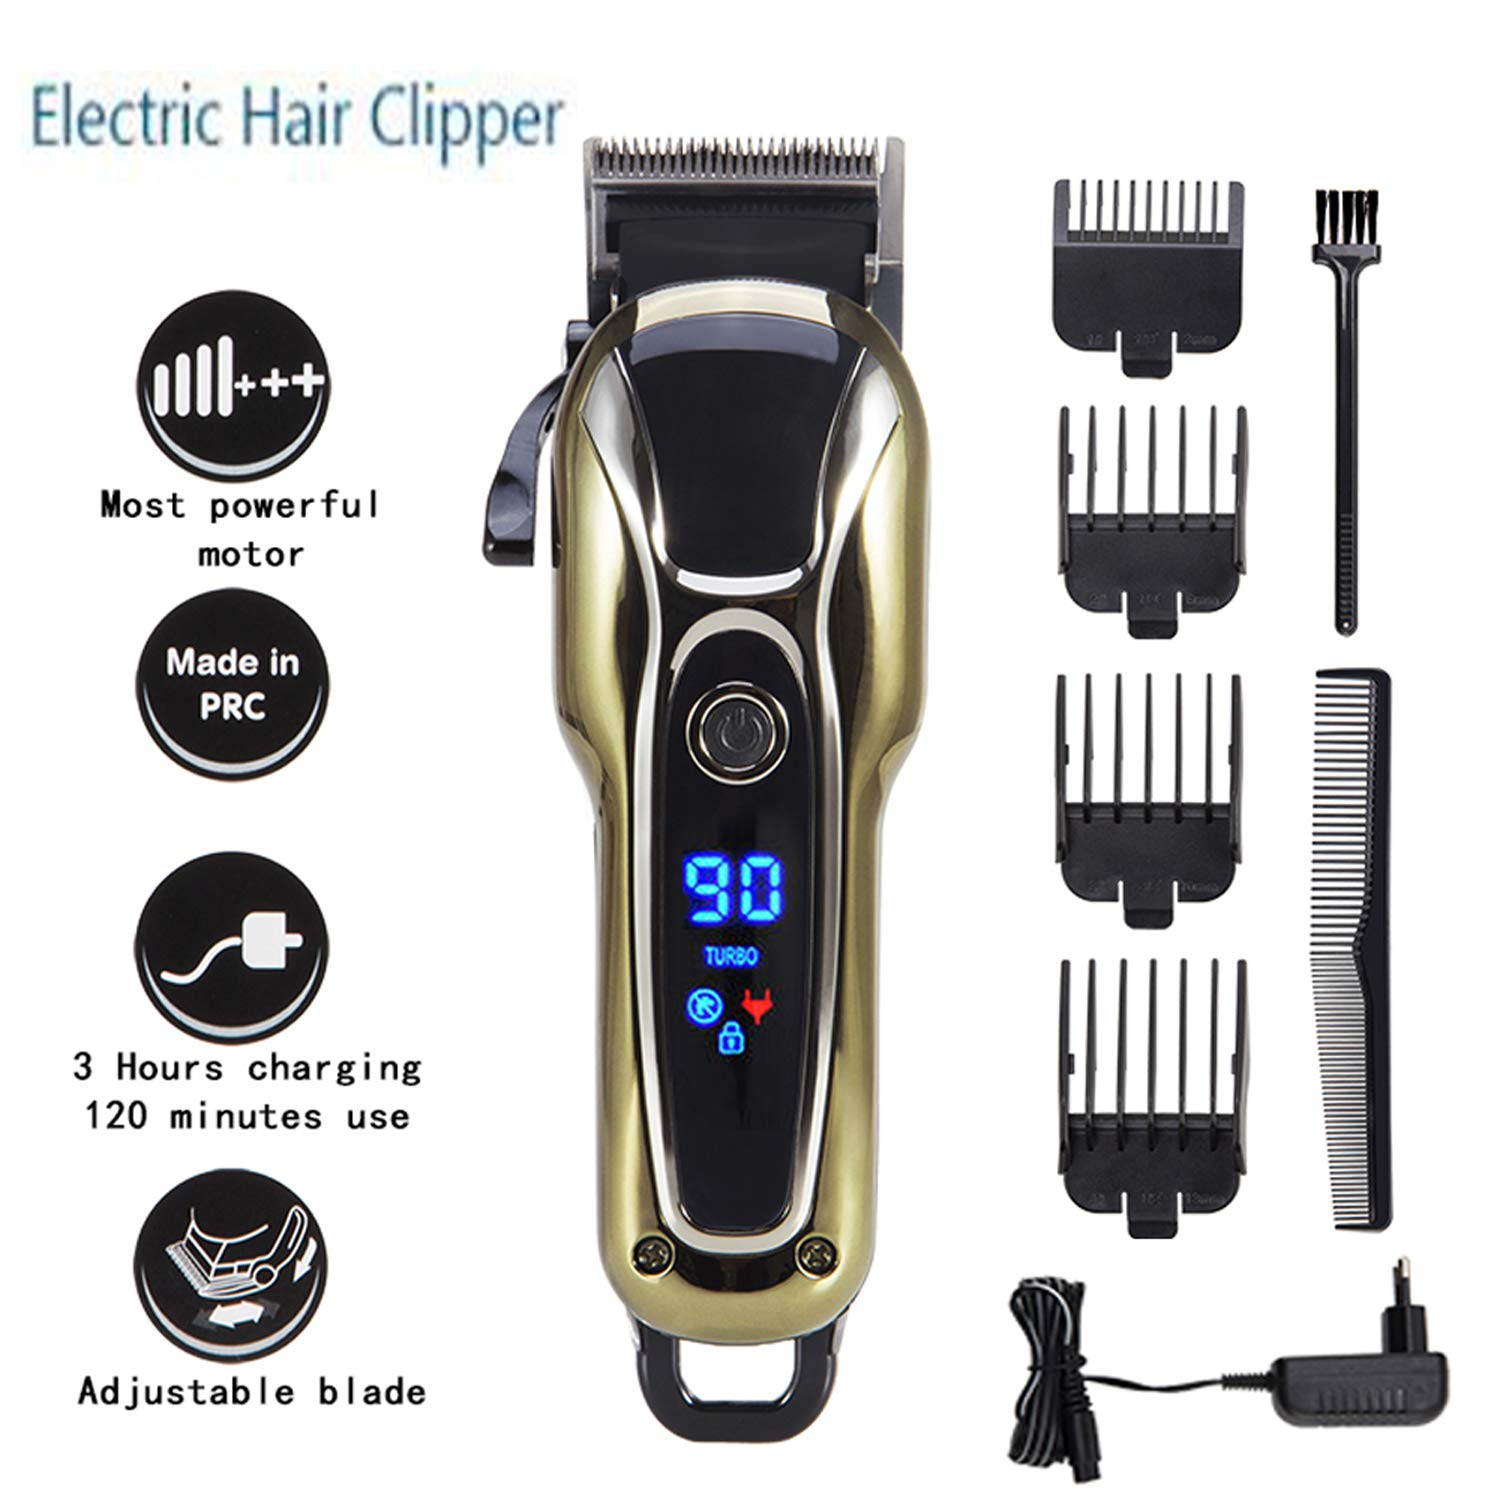 Professional 5-Star Rechargeable Hair Cipper Electric Shaving Machine Razor Barber Cutting Beard Trimmer Haircut Set Cordless (Gold)